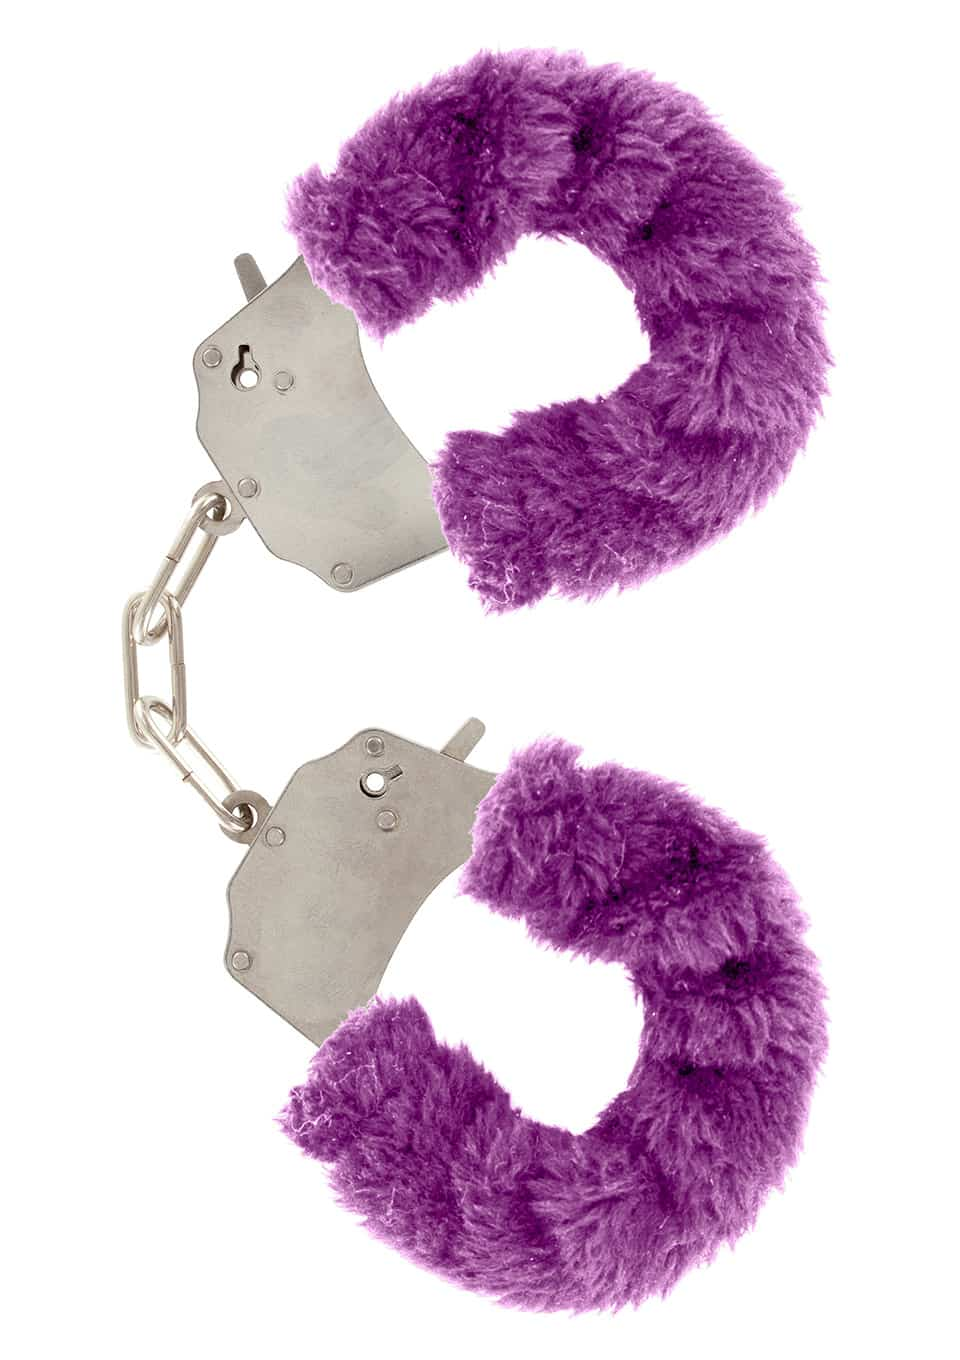 Furry Fun Cuffs Purple Käsiraudat SC3006009502-0